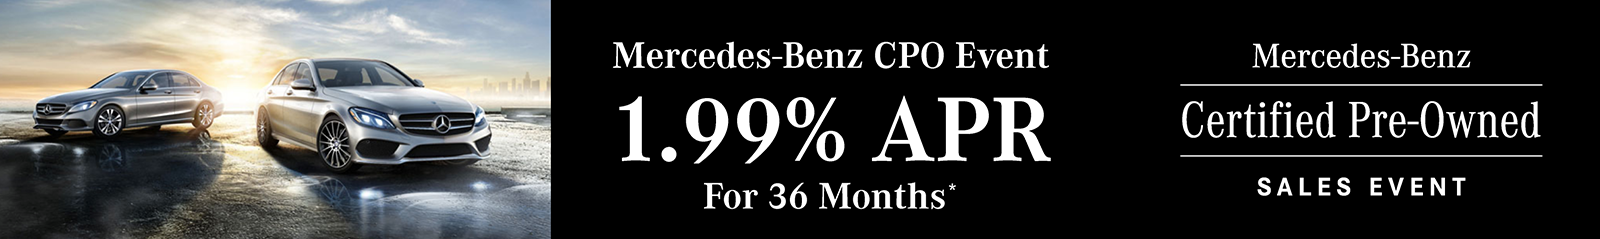 6 Certified Pre-Owned Mercedes-Benzs - Sandy | Mercedes ...